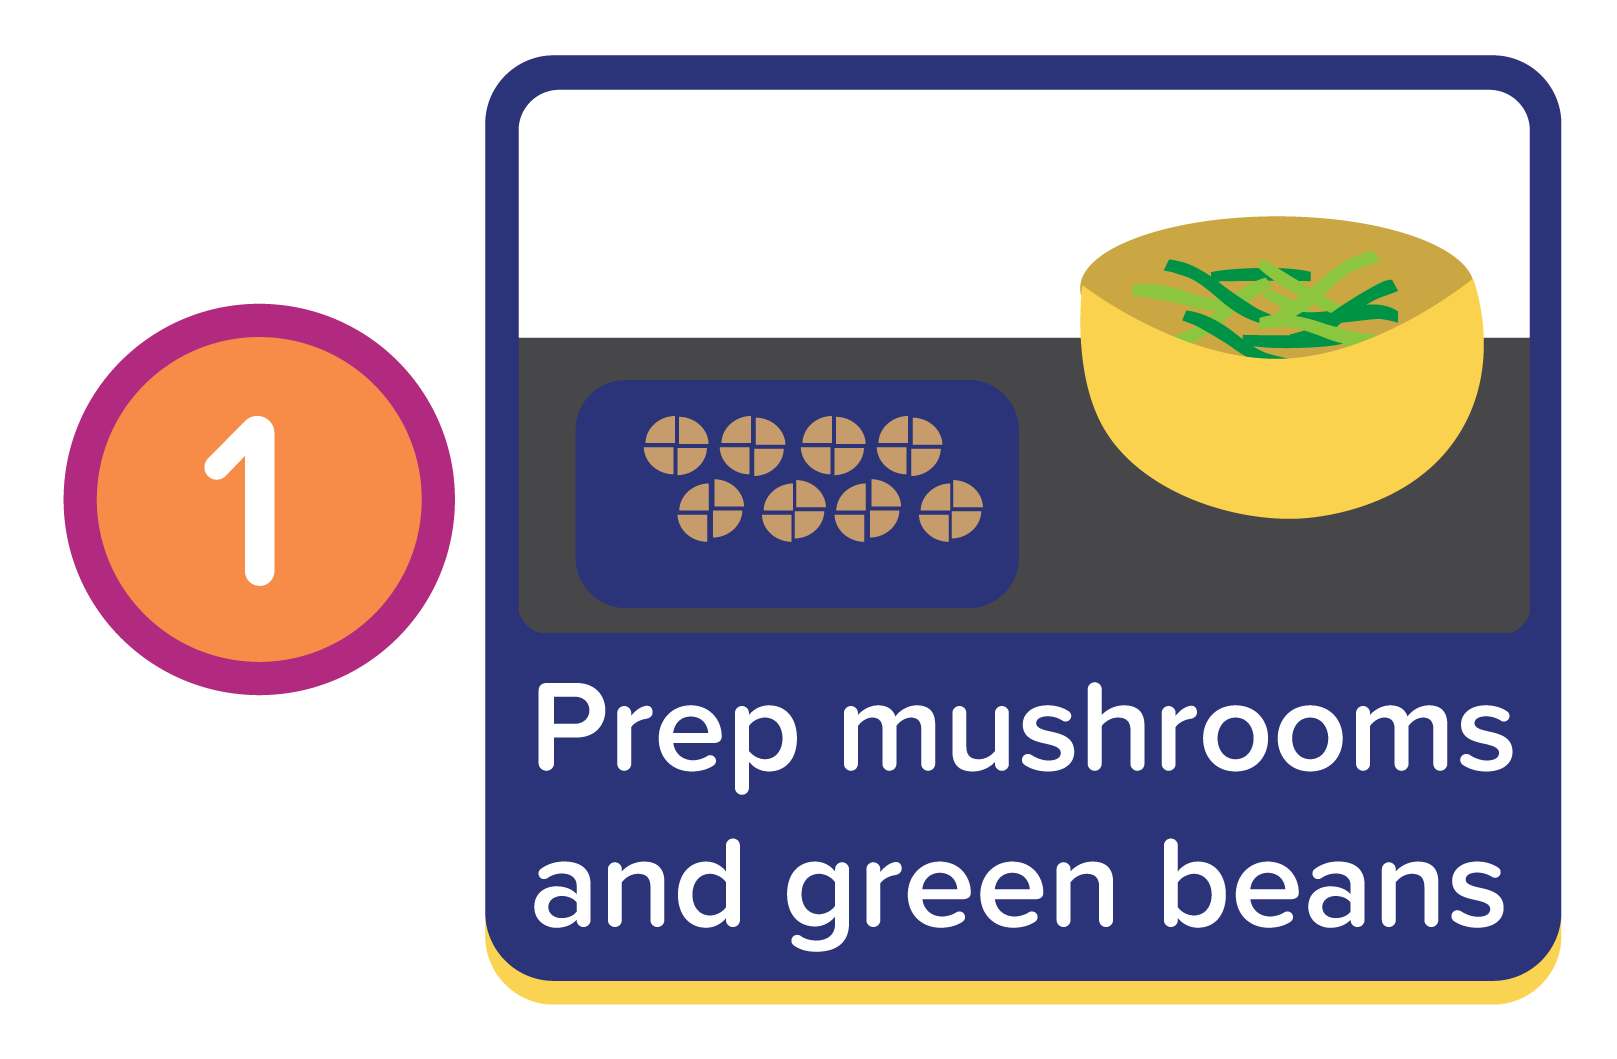 Almond Pesto Green Beans_The Plan for overview-01.png